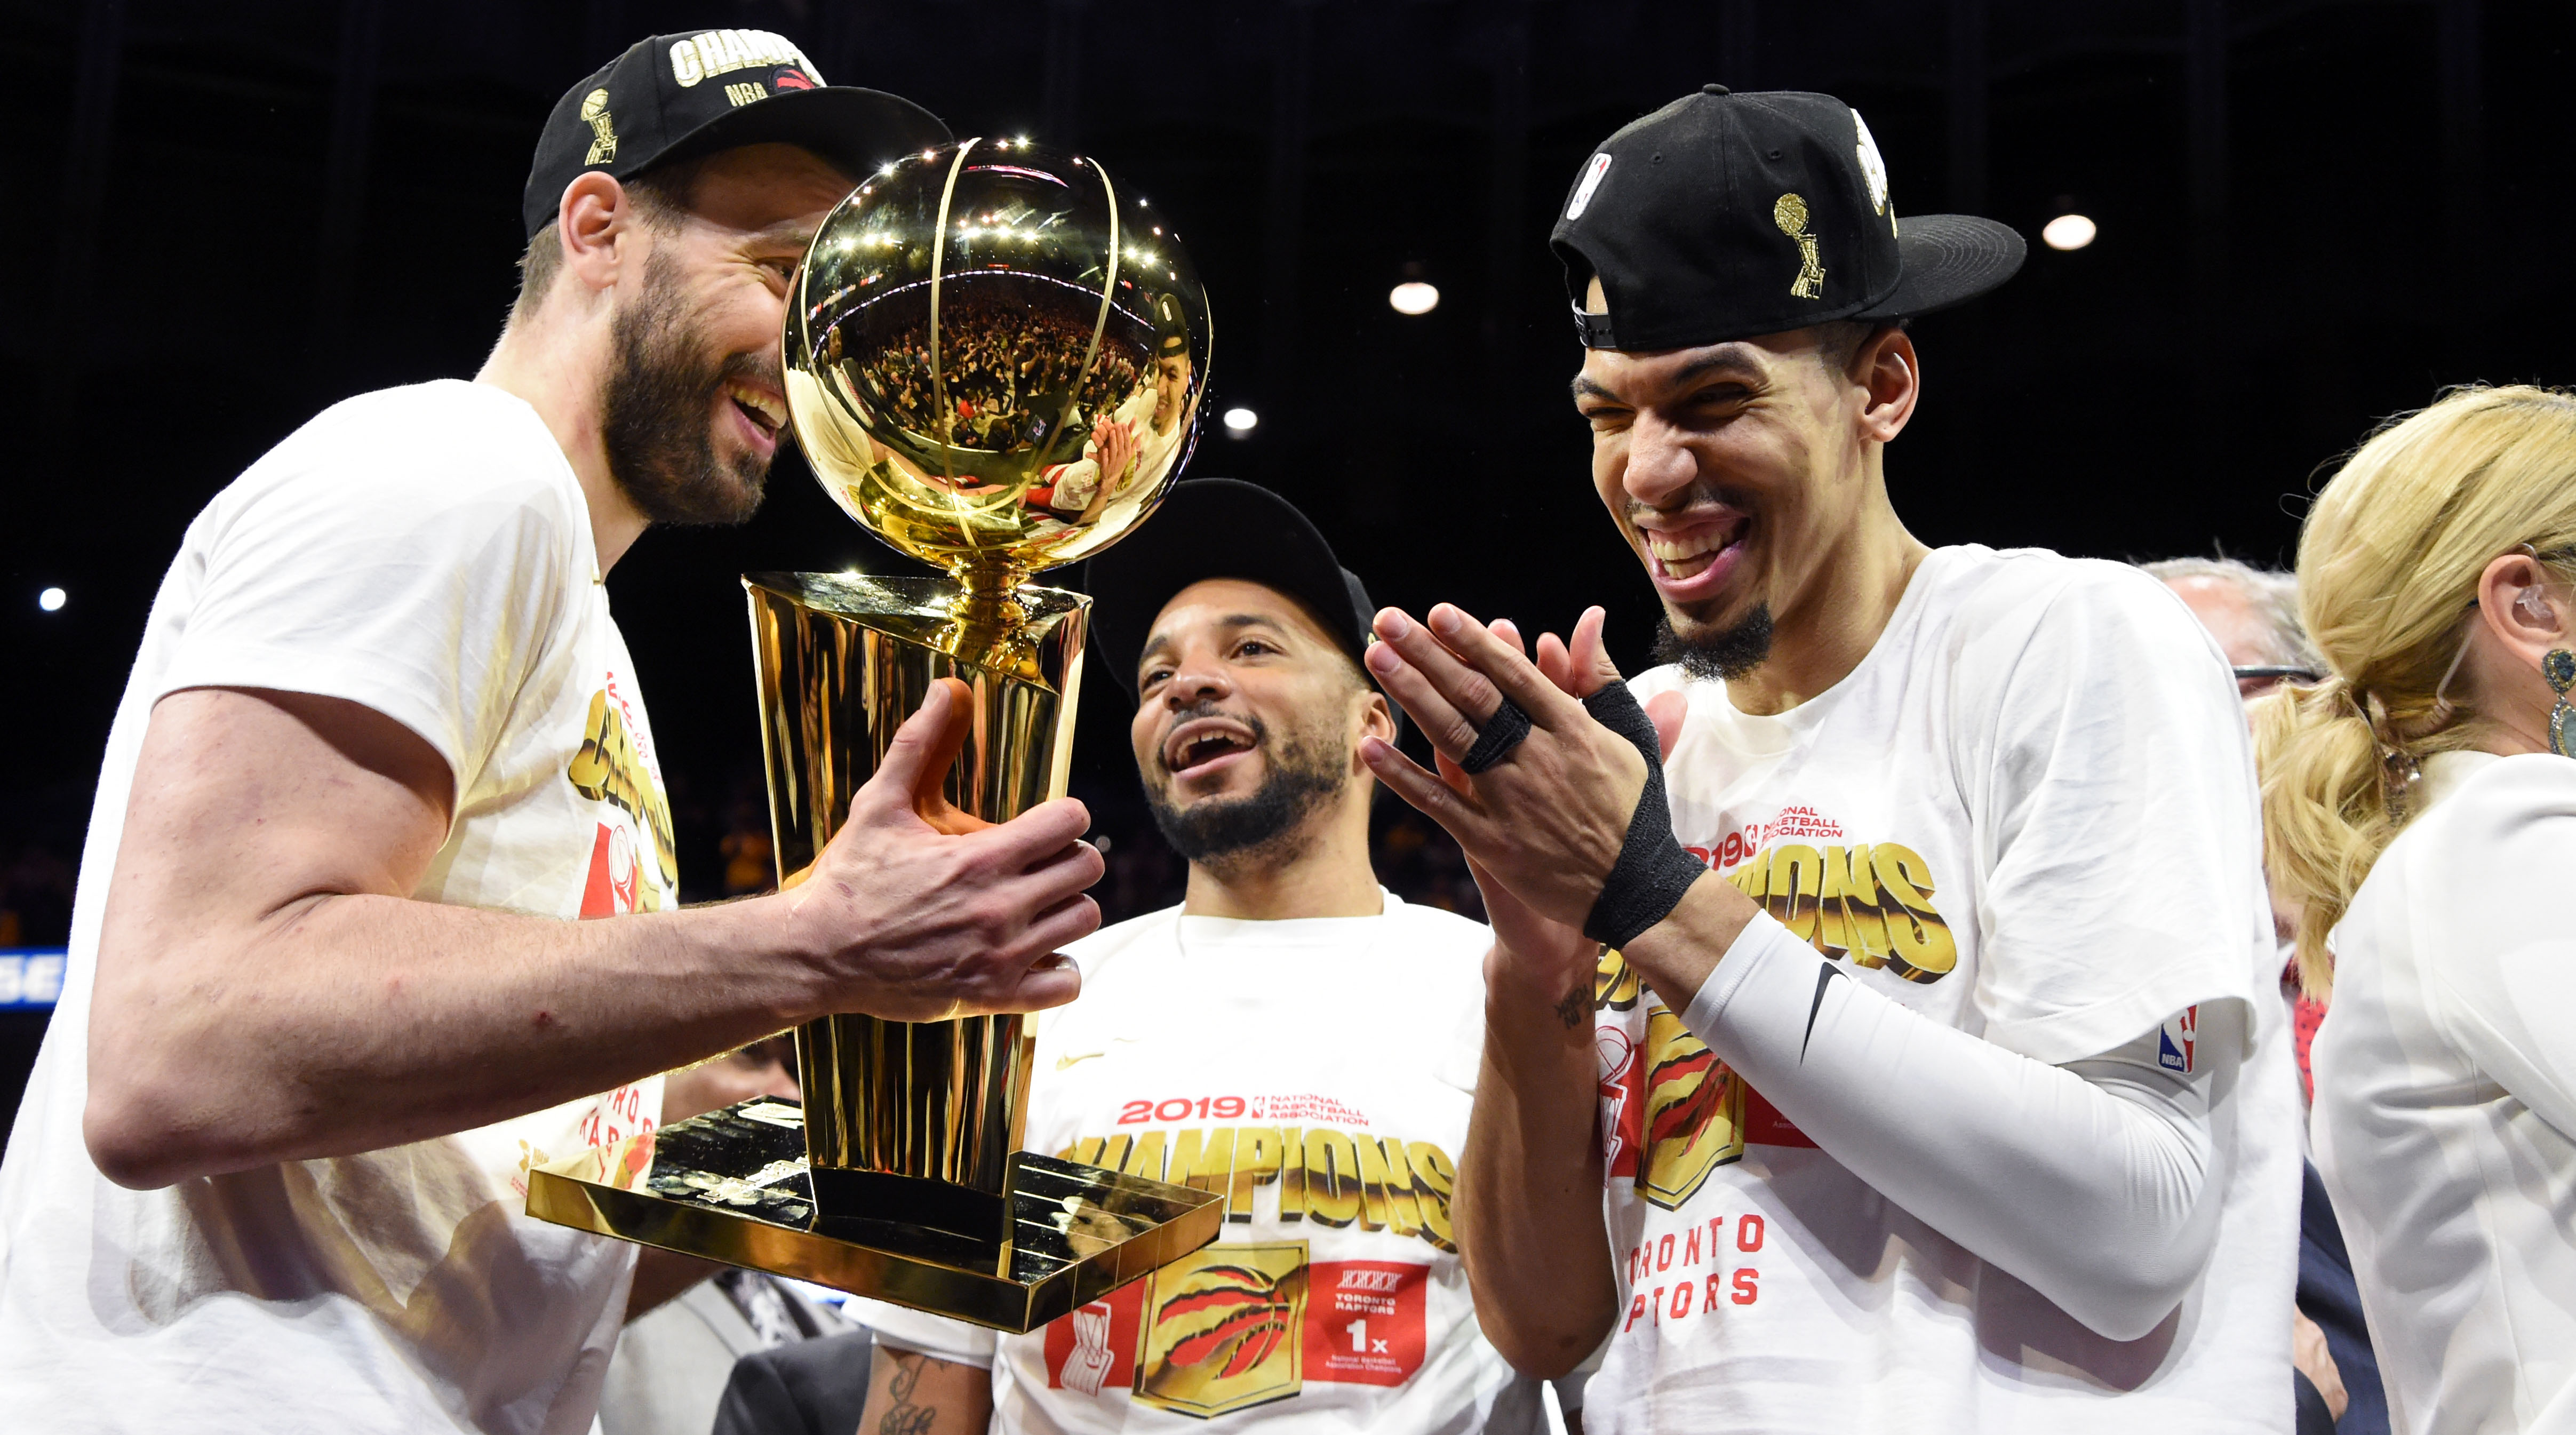 Danny Green says Raptors visiting White House is a hard no